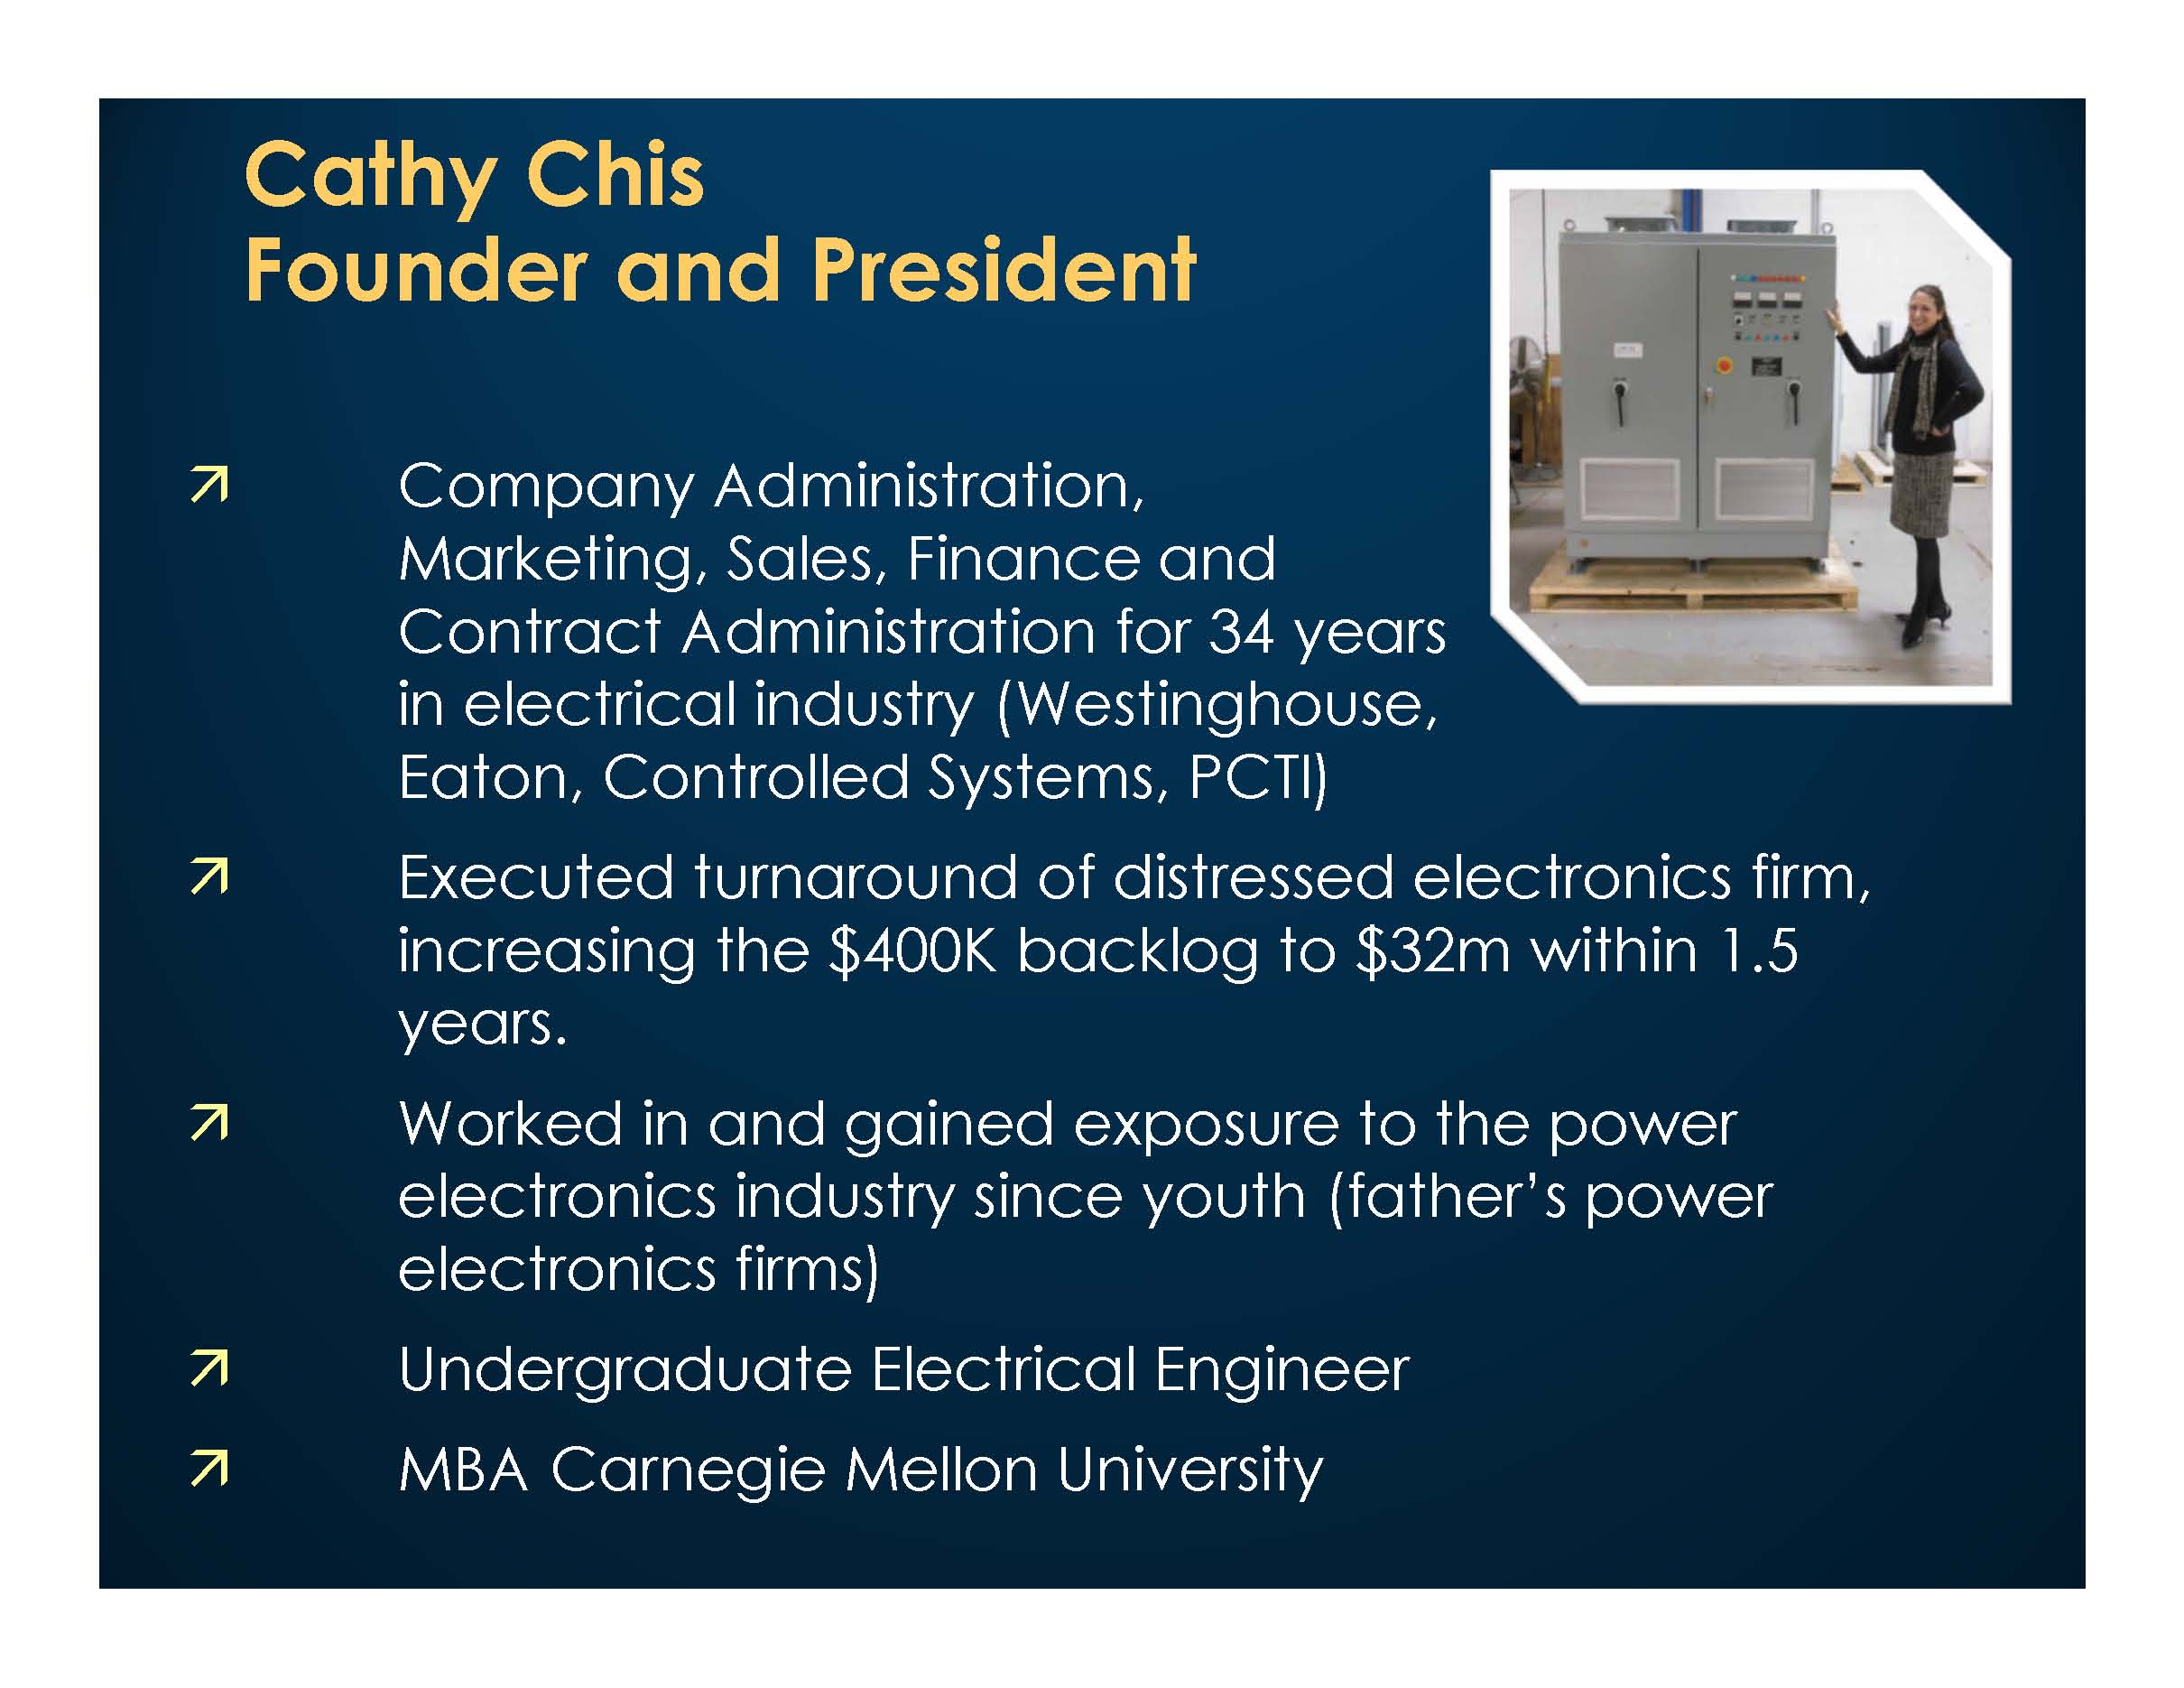 Cathy Chis, Founder and President